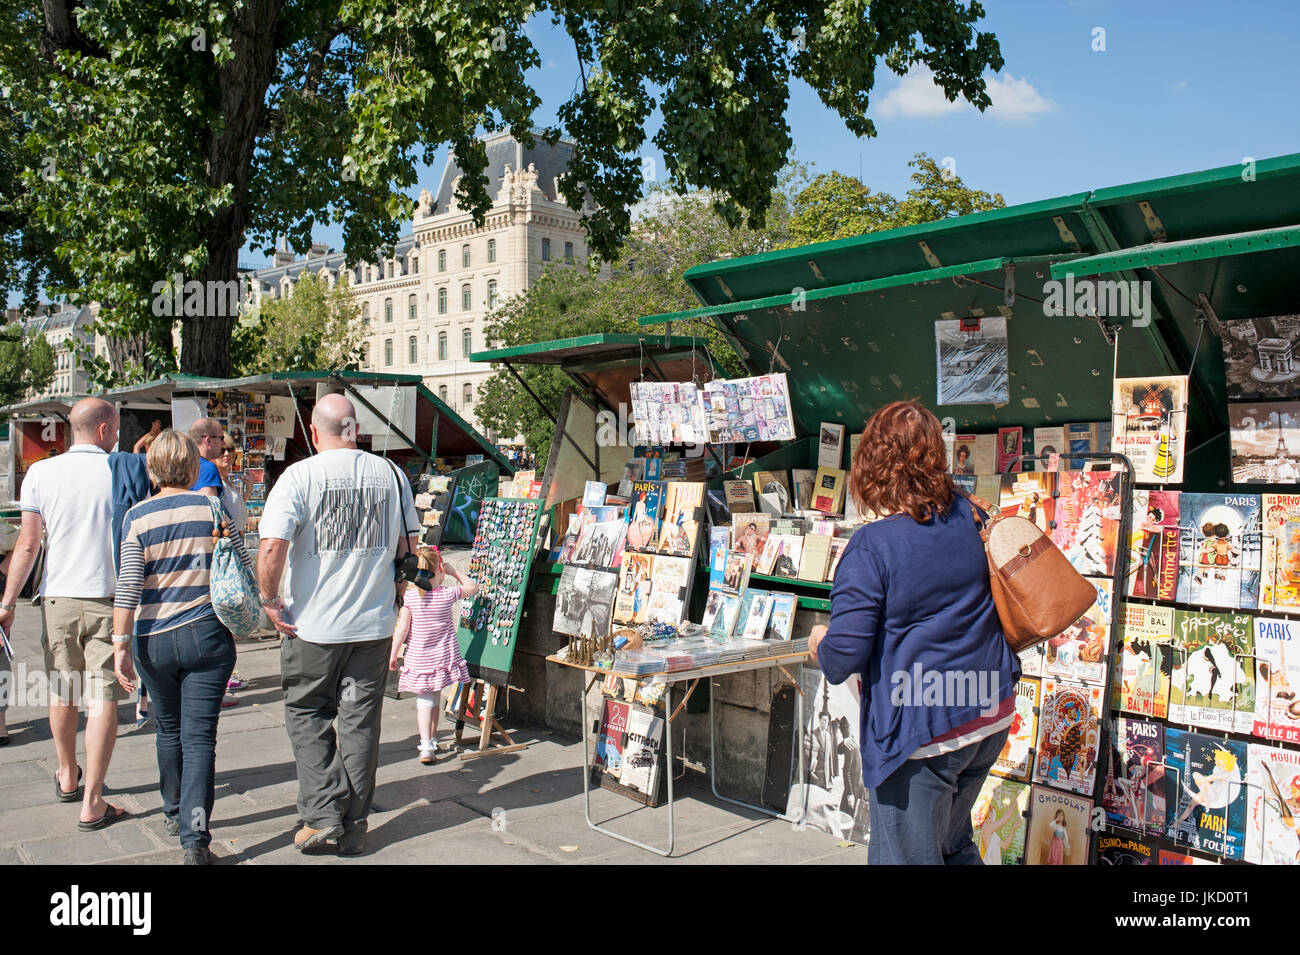 Paris, France - Left Bank books on display on book stall around Notre Dame - Stock Image